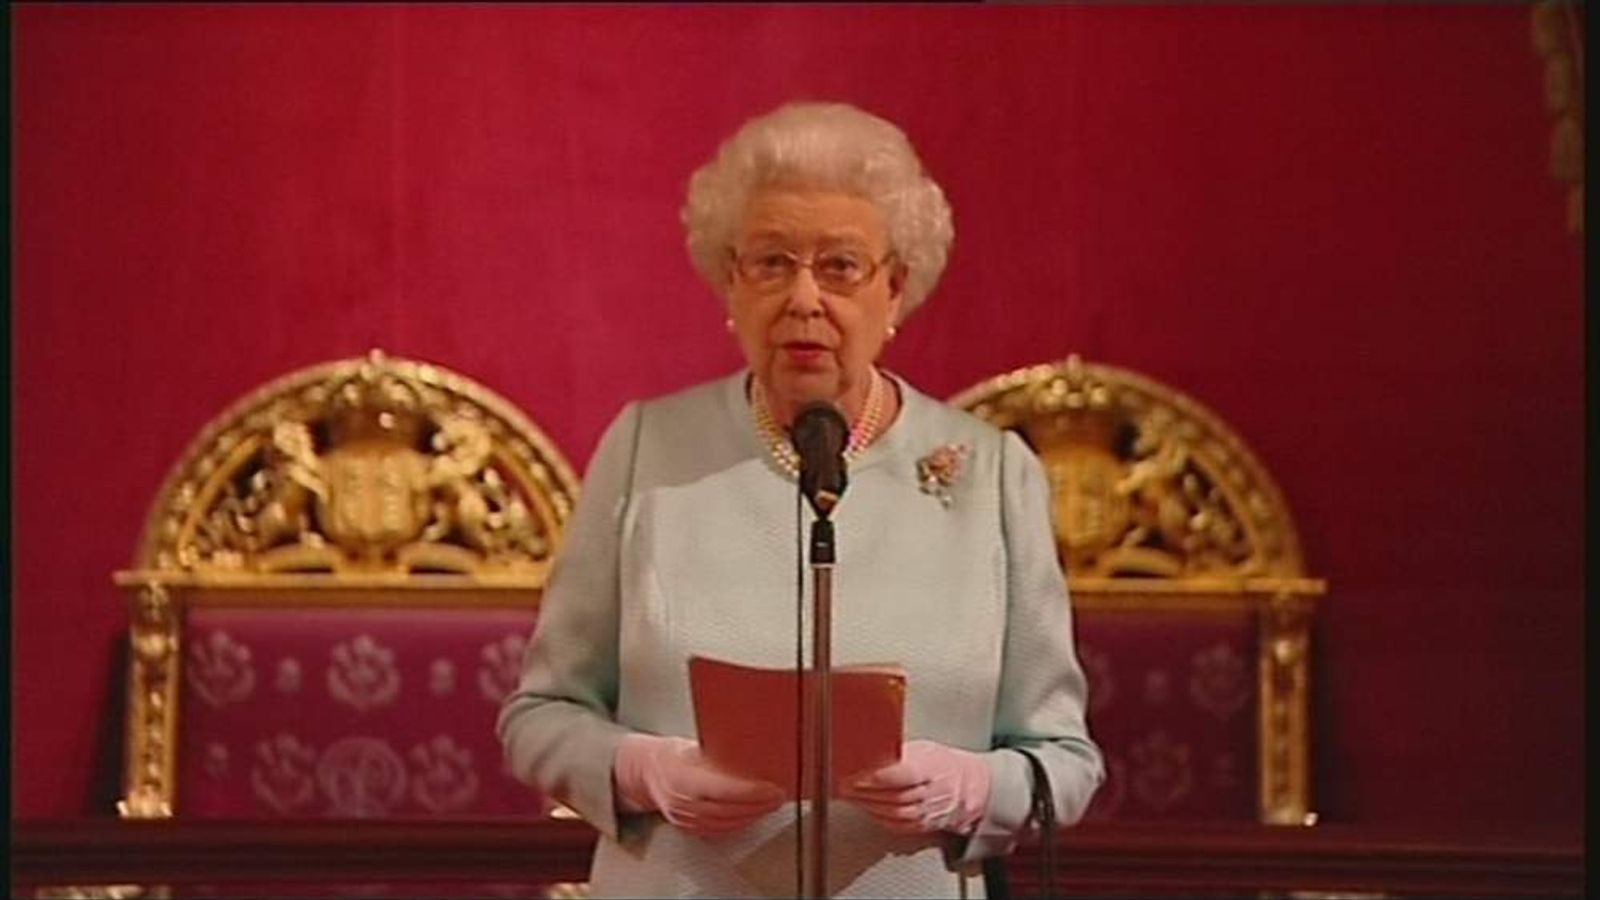 Olympics queen speech